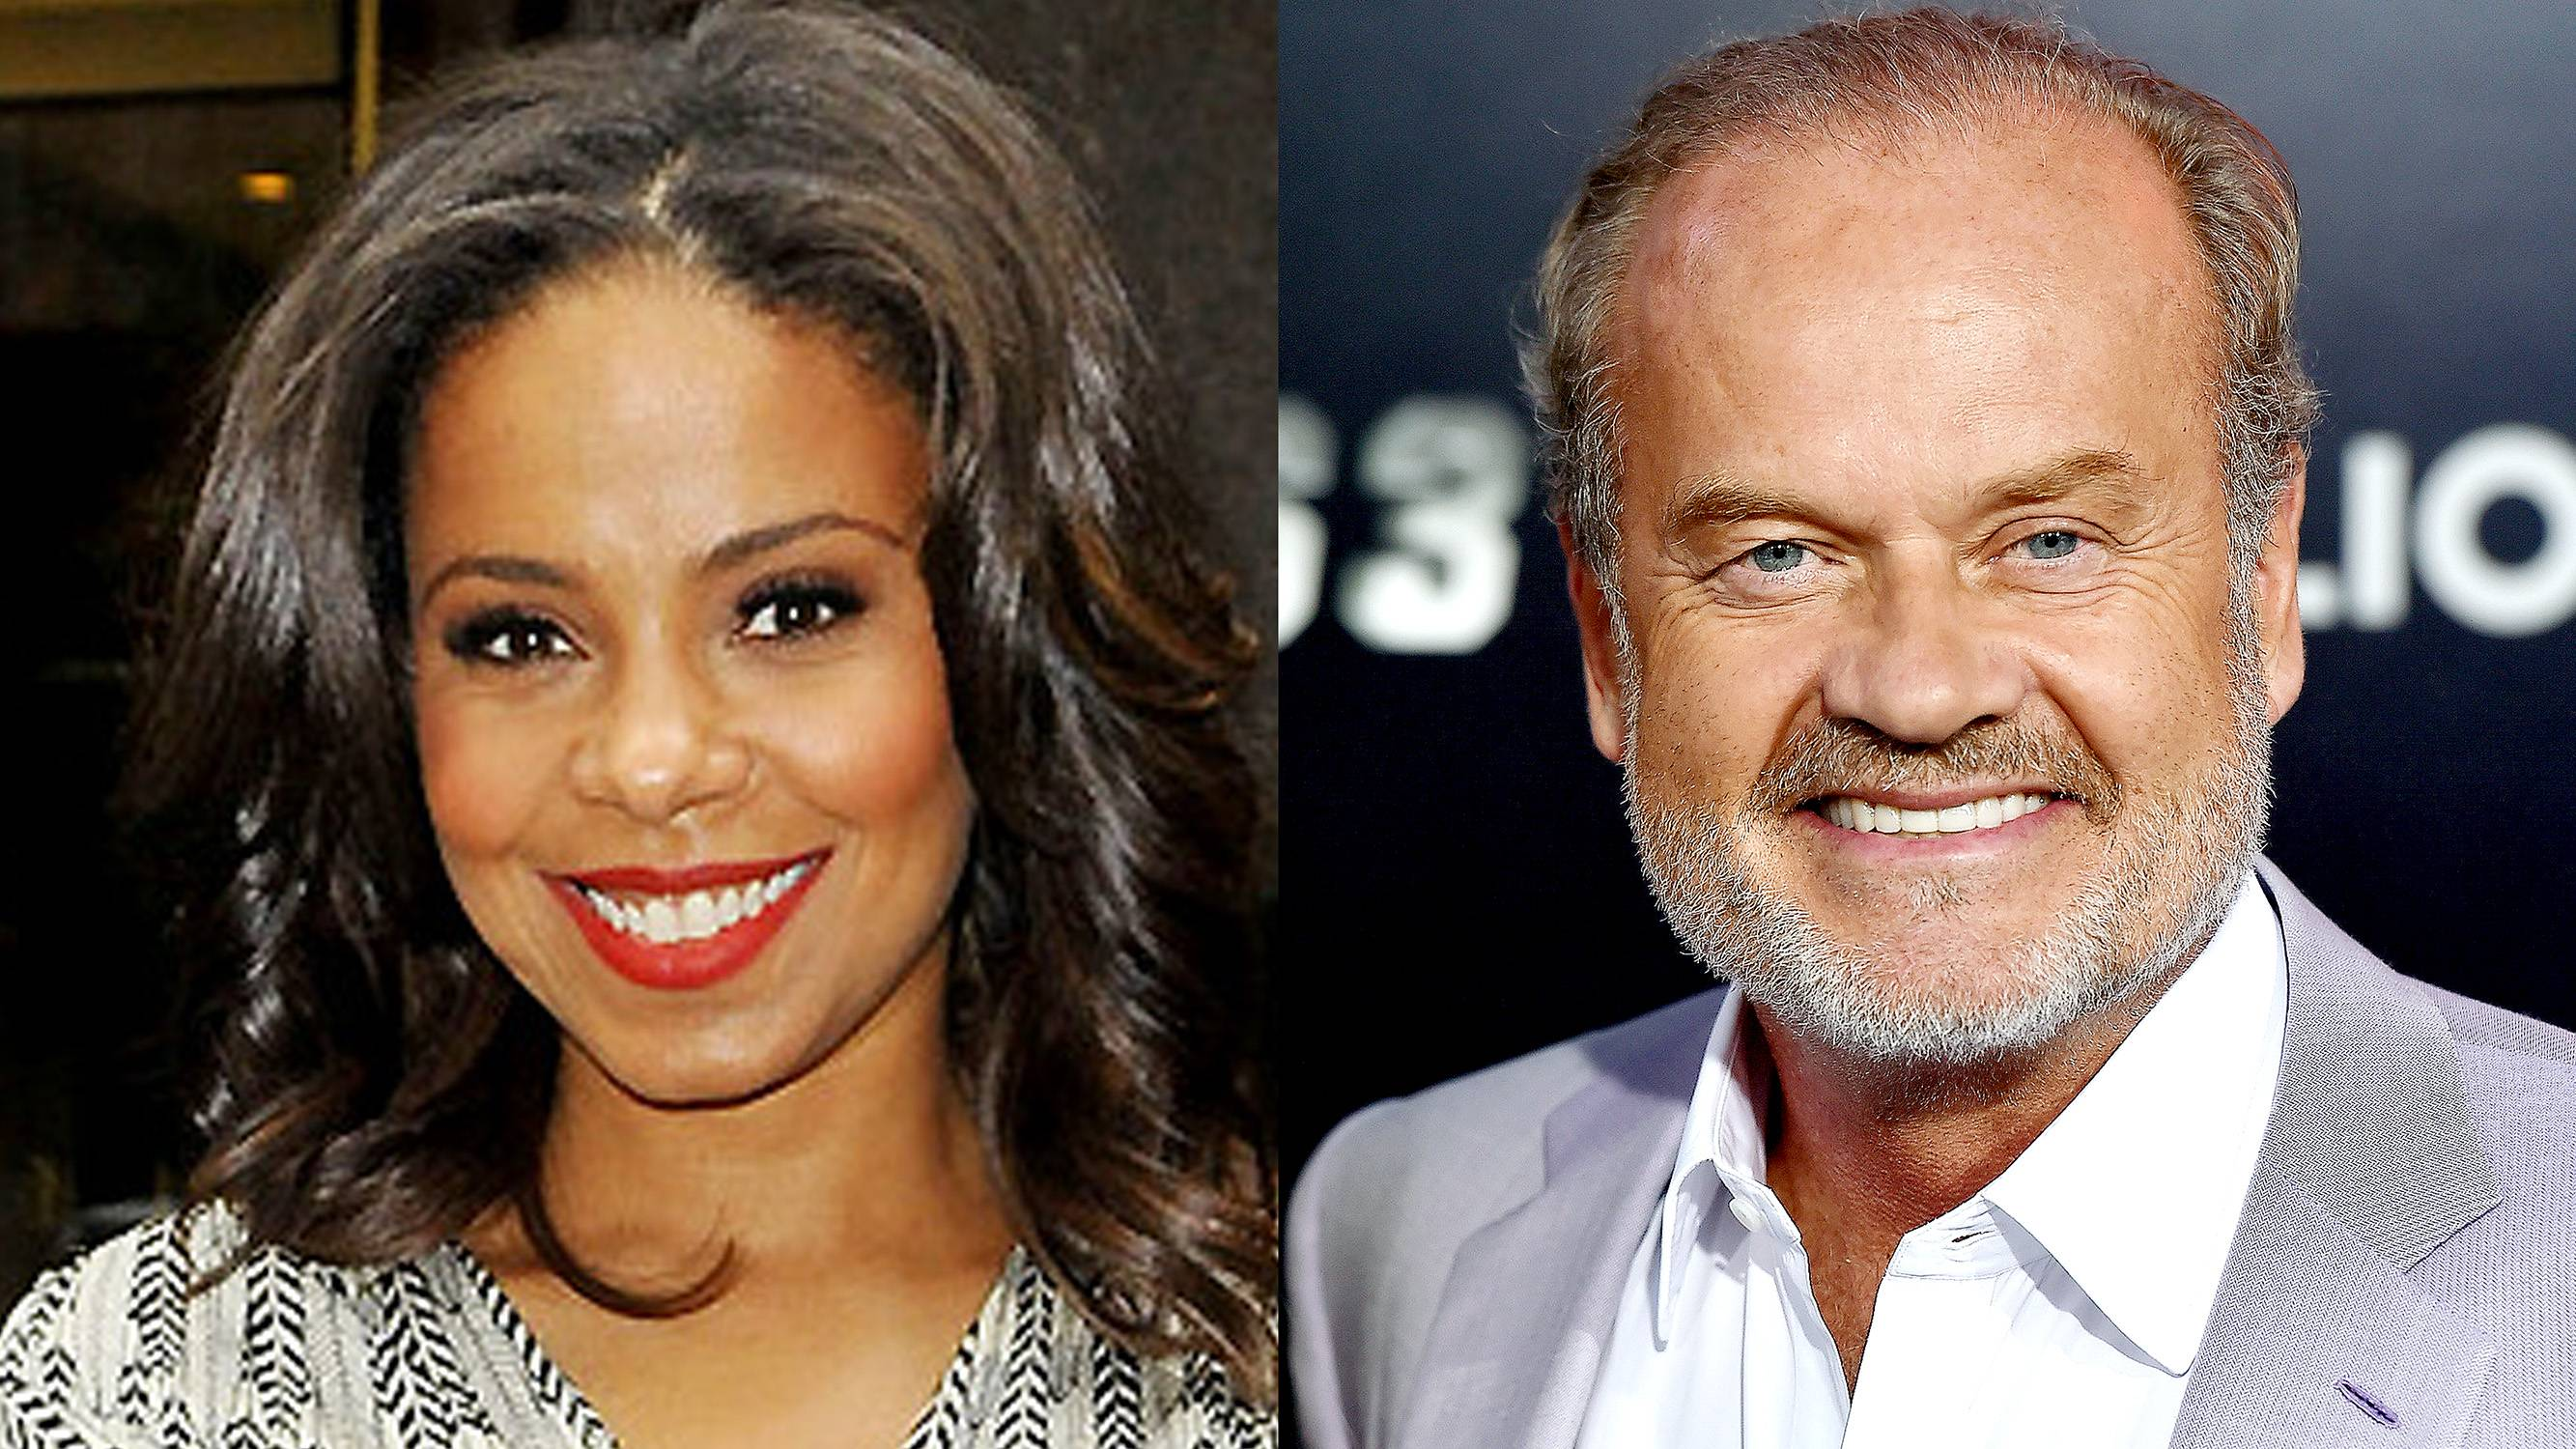 8. She Starred Alongside Kelsey Grammer in a TV Series - She co-starred in the Starz series Boss alongside the executive producer of Girlfriends.  (Photos from Left: Enrique RC/PacificCoastNews.com, Frazer Harrison/Getty Images)